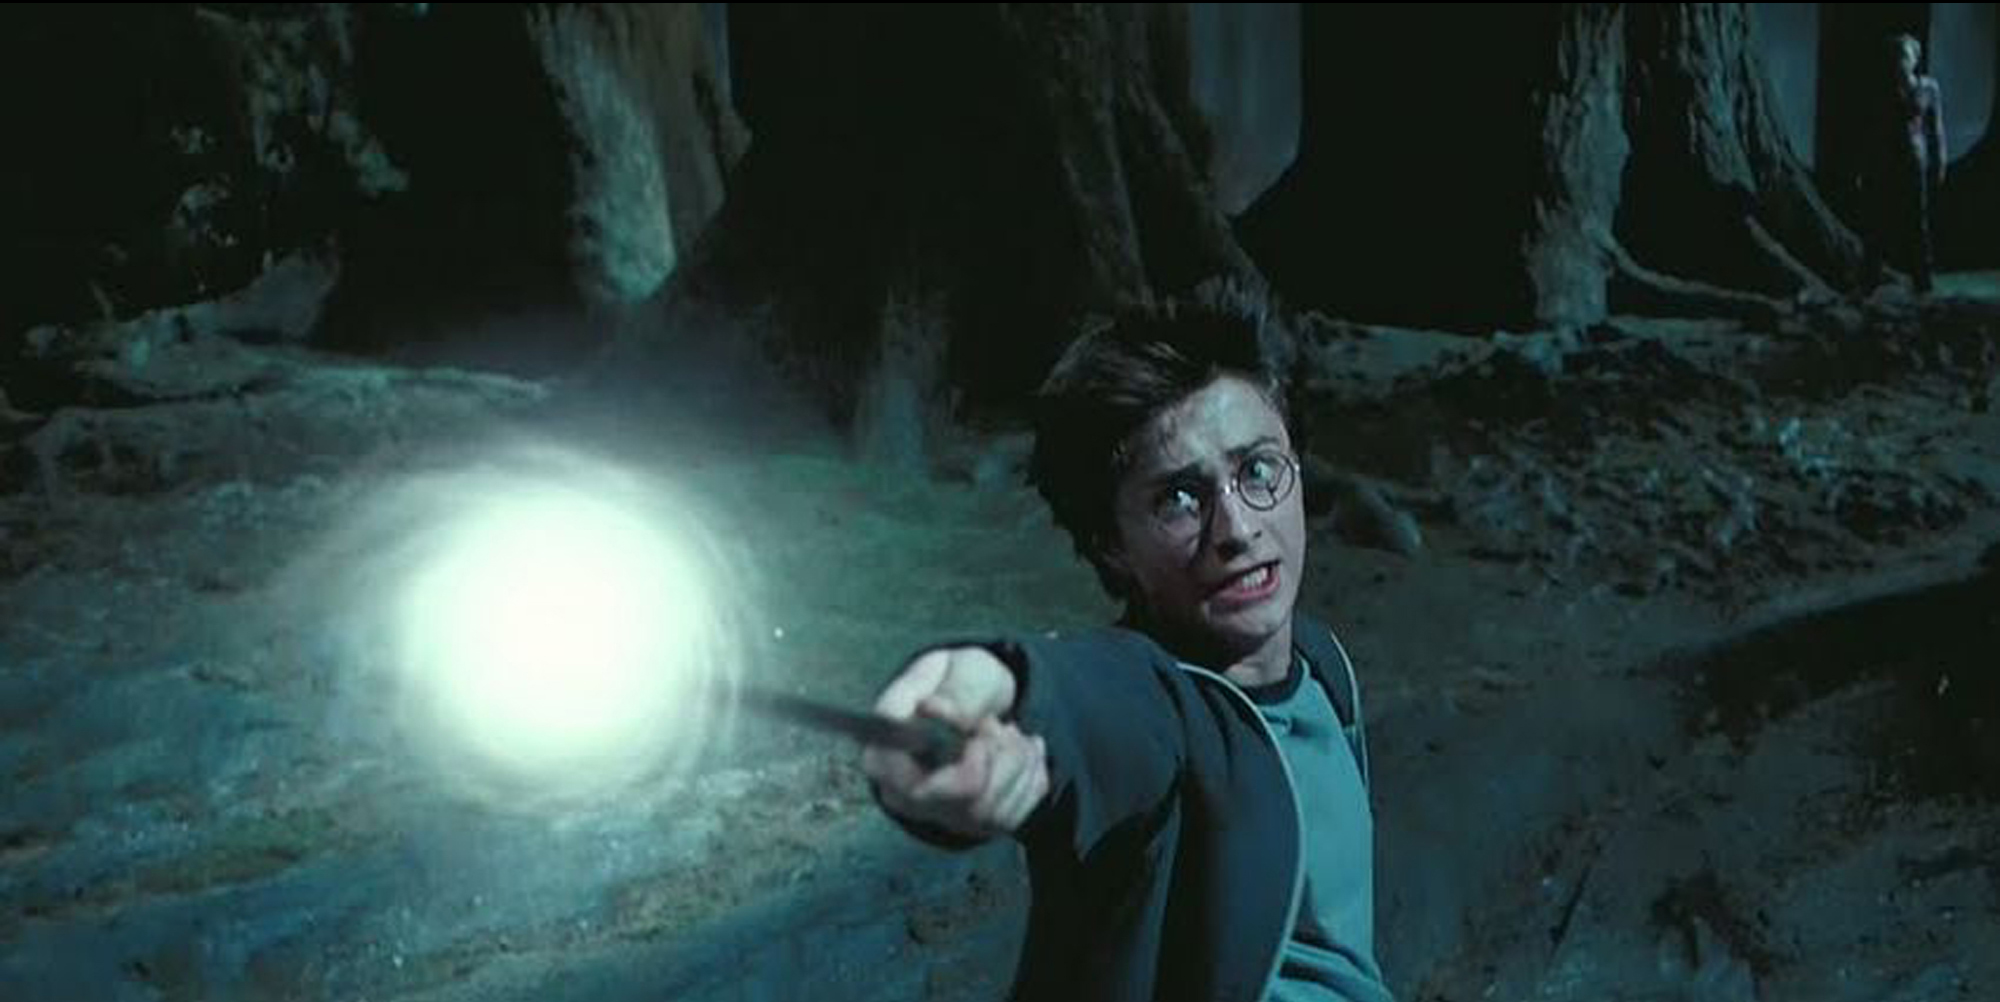 Harry summons his patronus